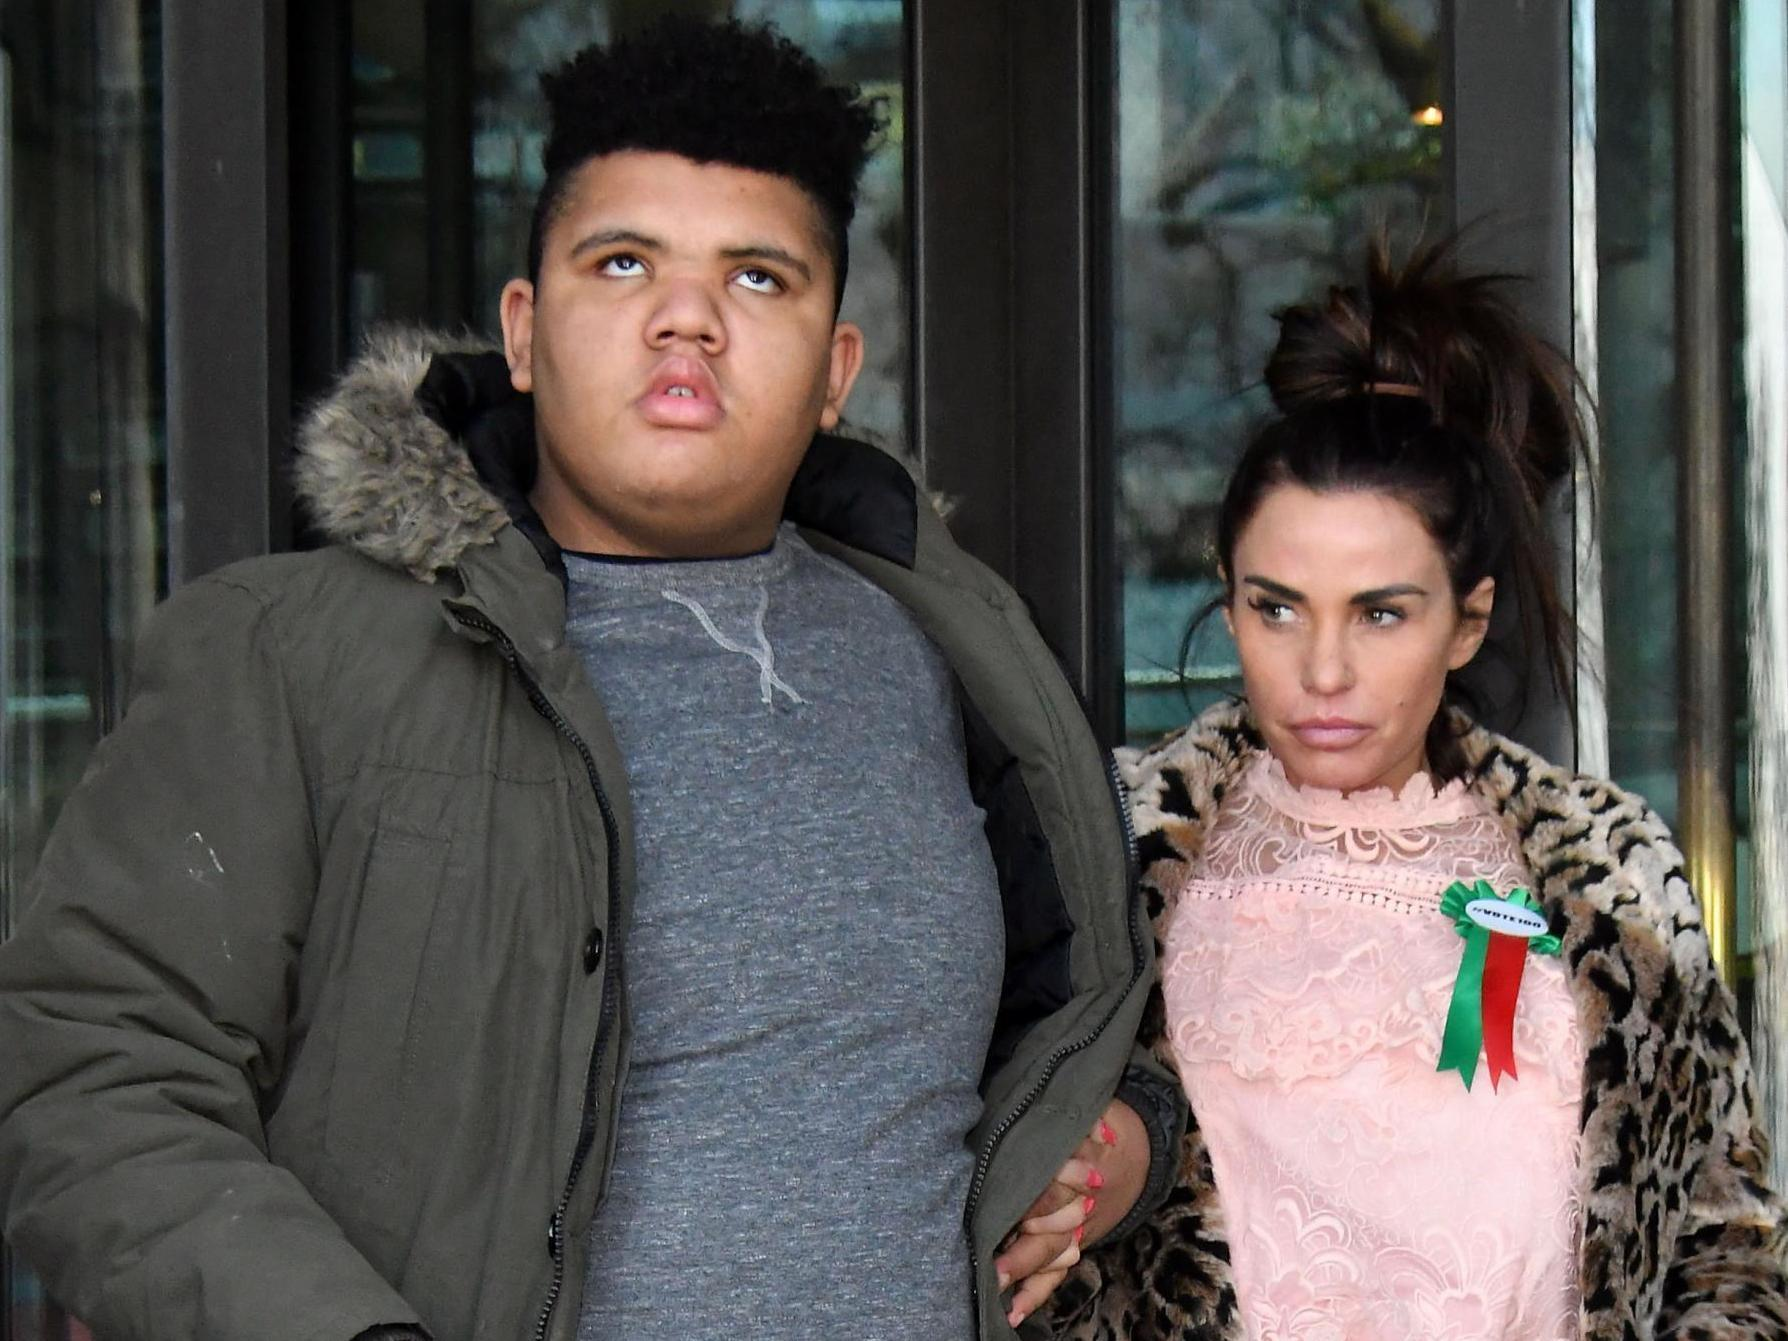 Katie Price says son Harvey battling 'complex' problems in intensive care